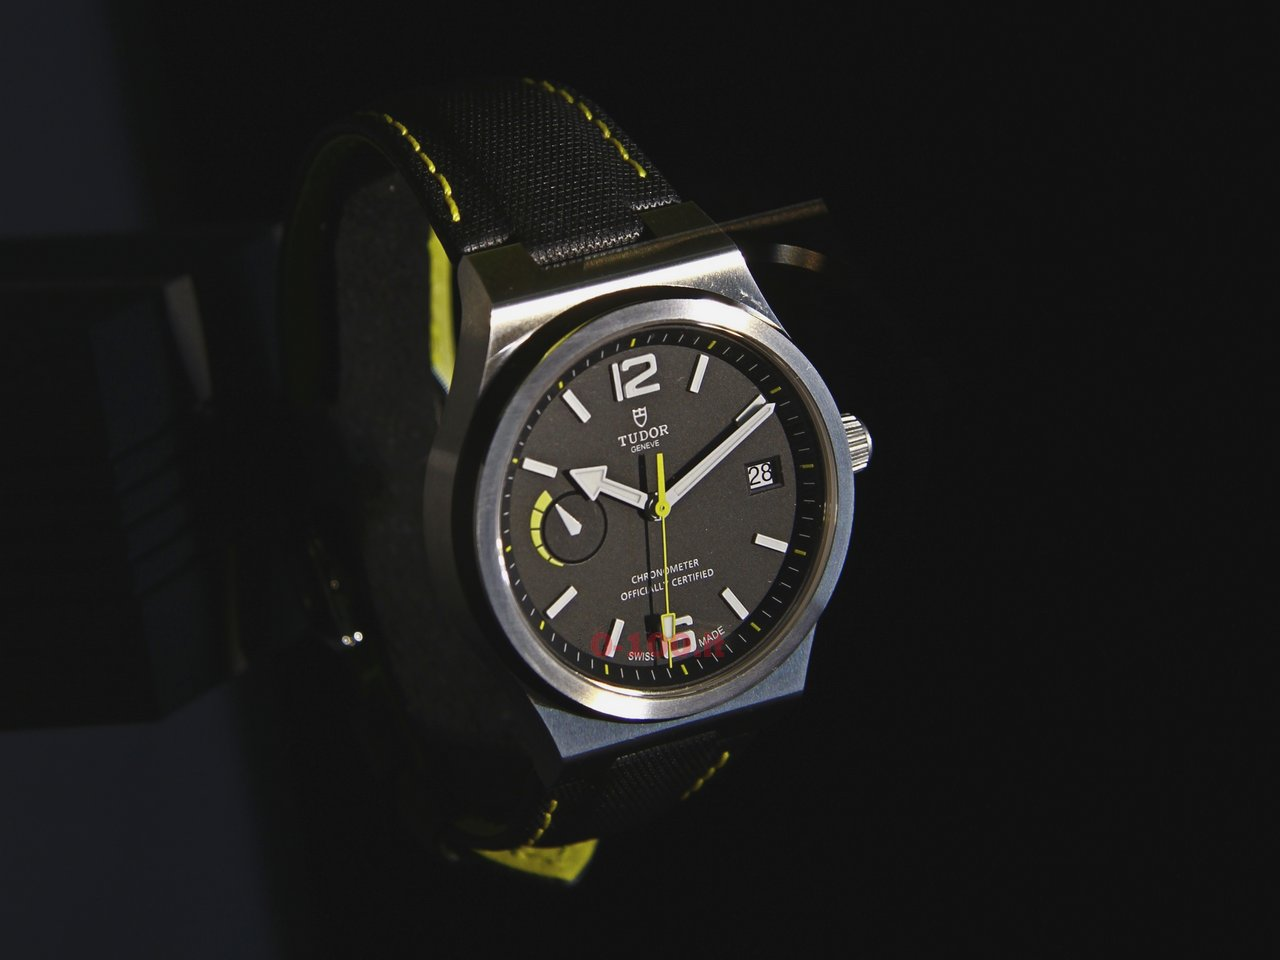 baselworld-2015_tudor-north-flag-0-100-1